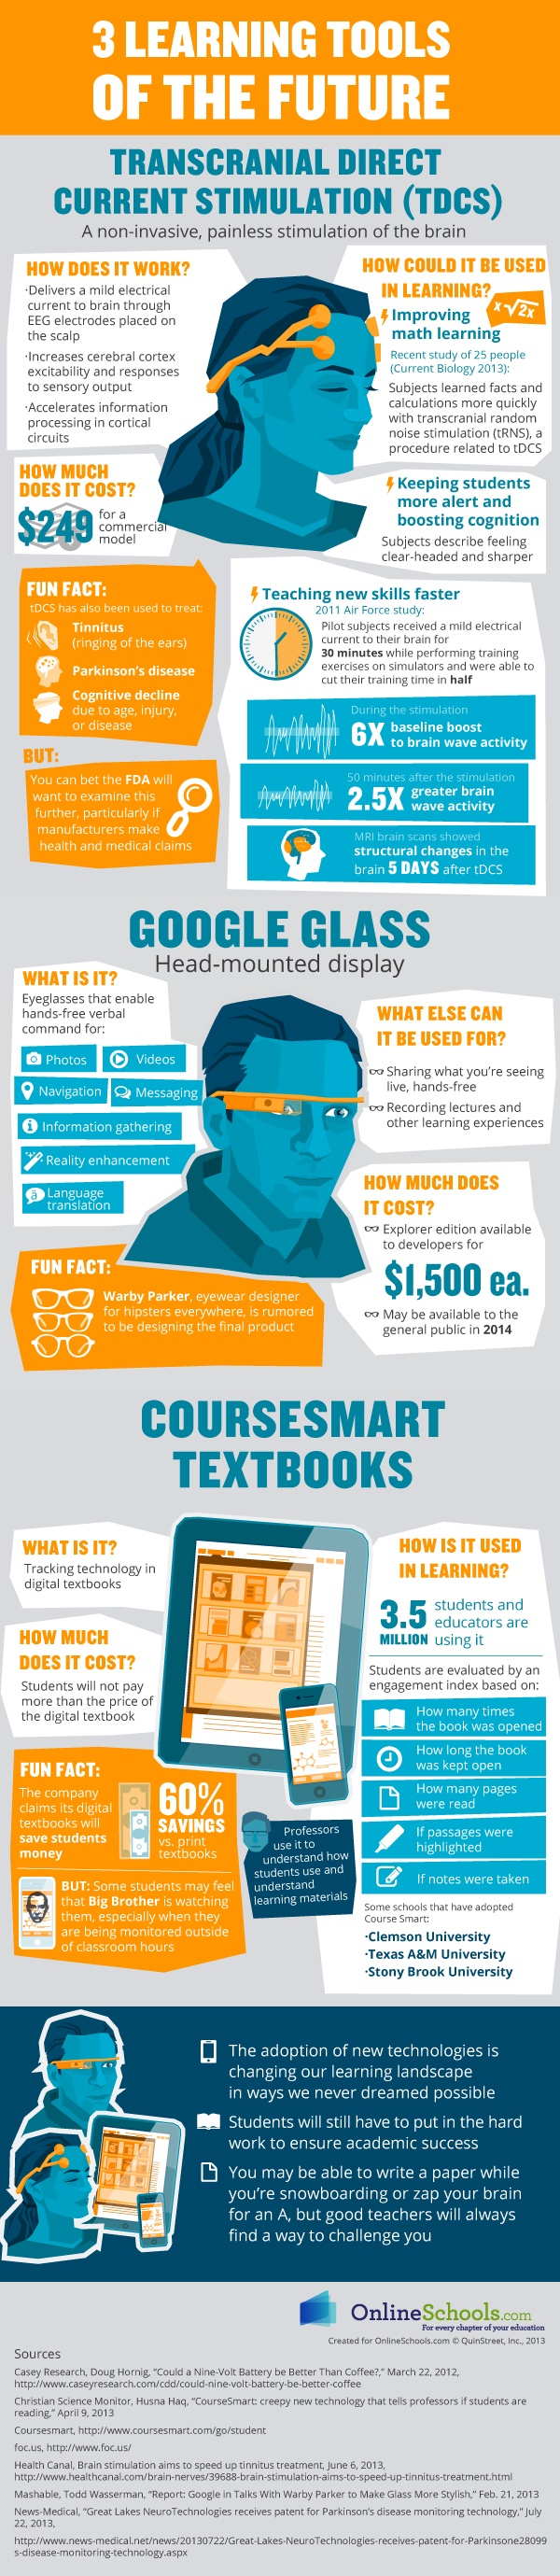 Learning-Tools-of-the-Future-Infographic